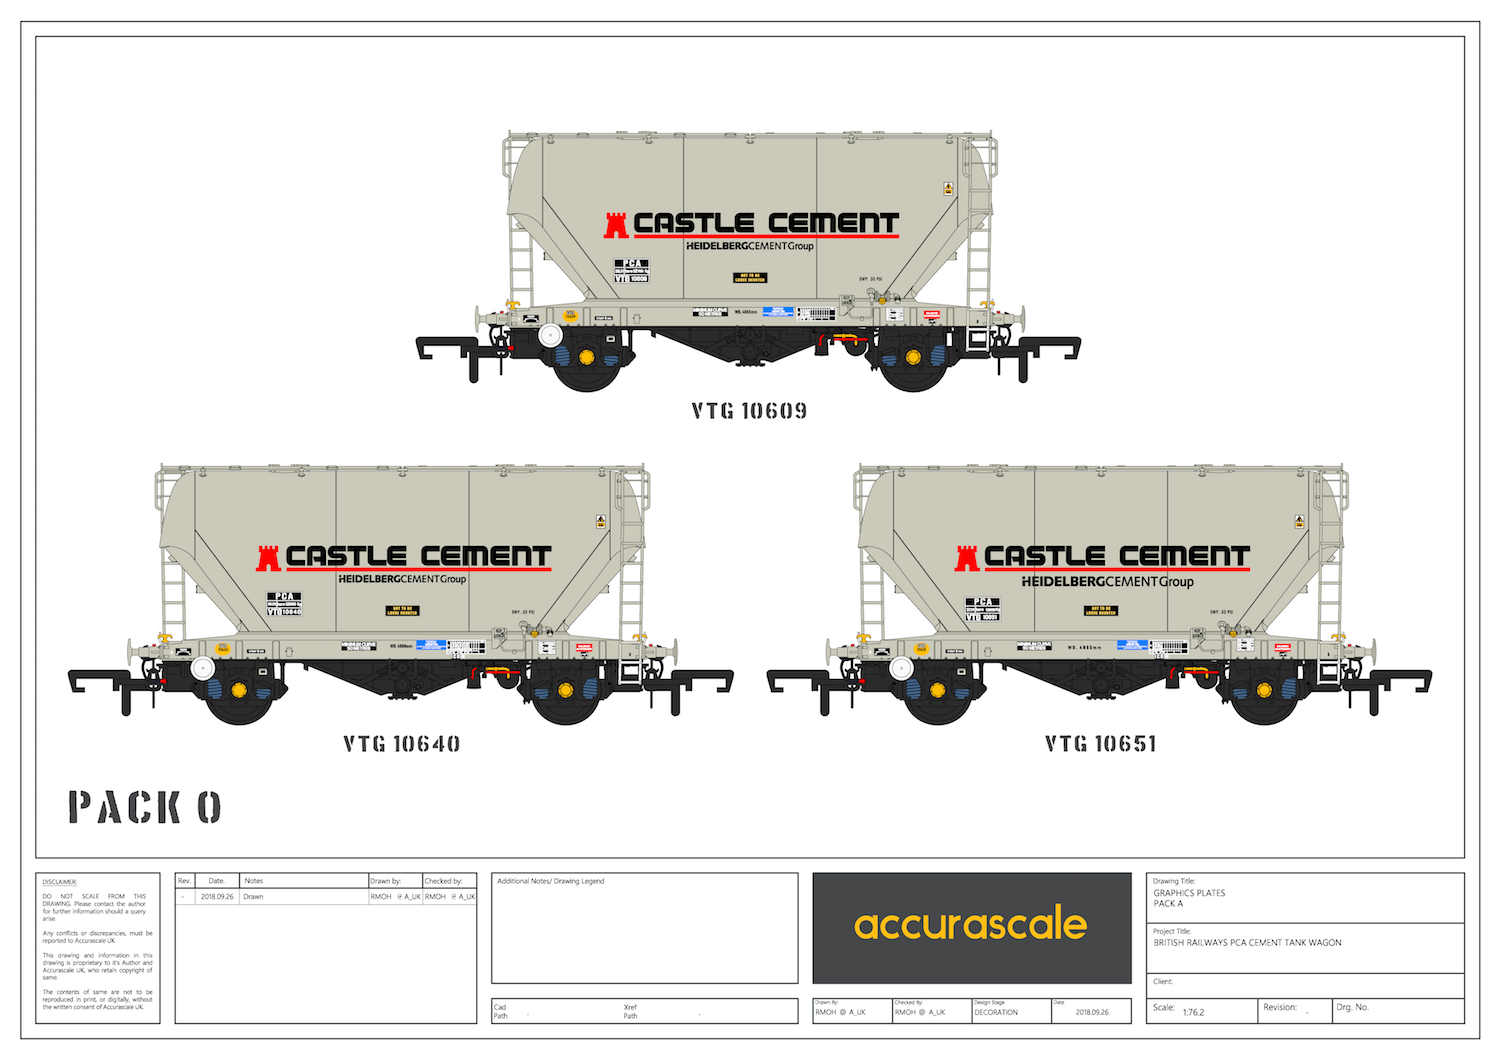 Accurascale PCA Bulk Cement - Castle Cement Pack O